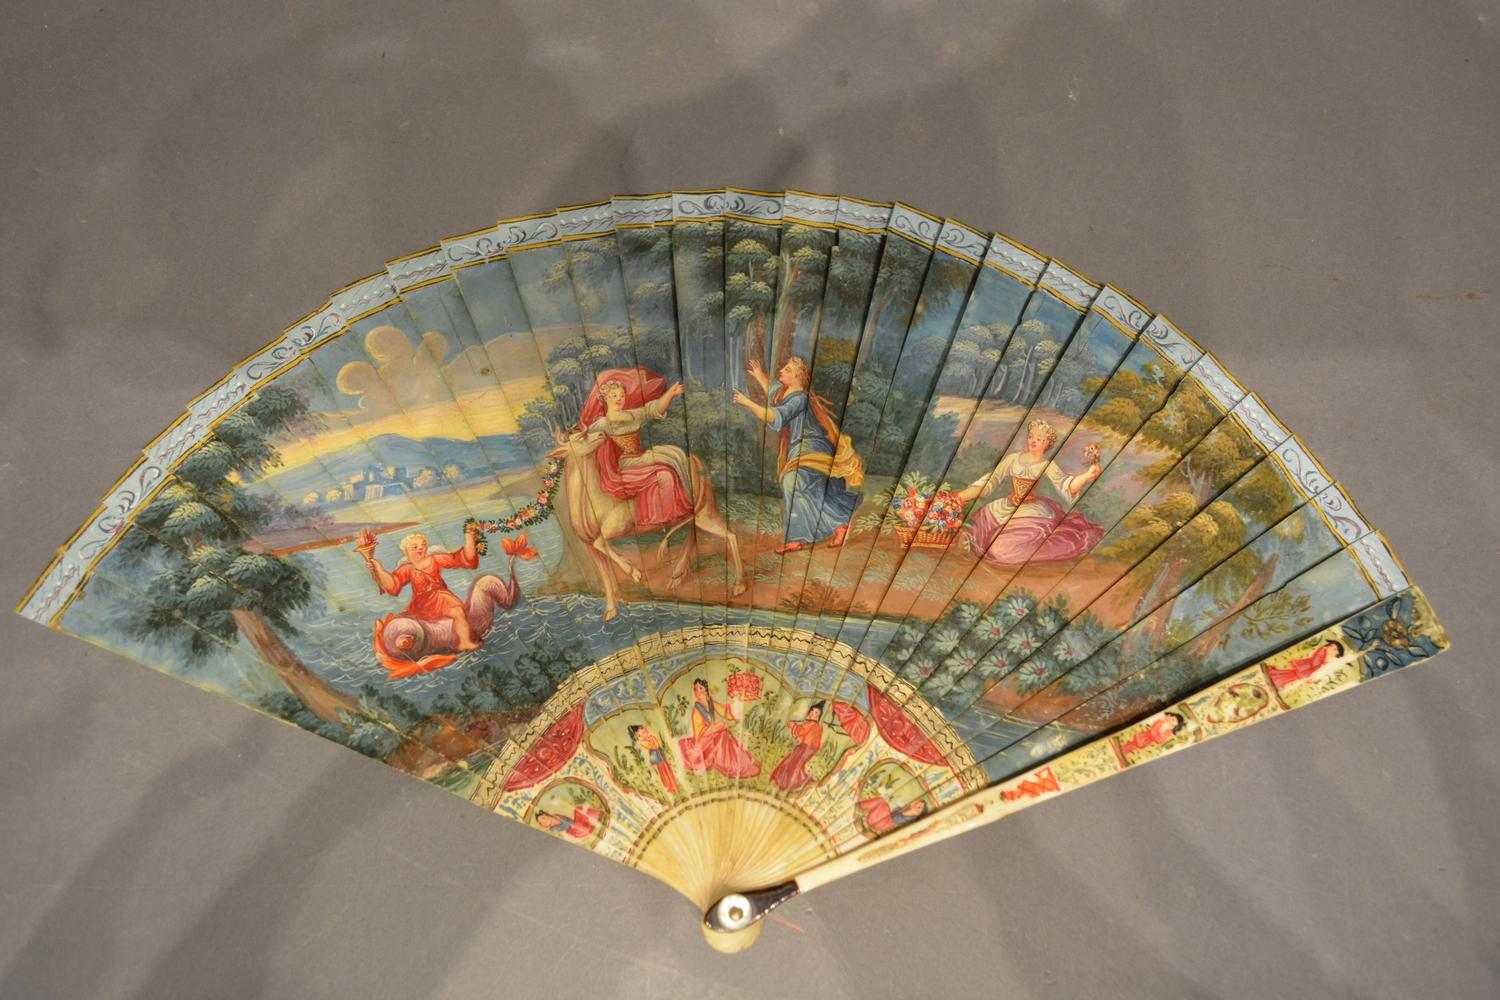 Lot 326 - An 18th Century Ivory Vernis Martin Type Fan, one side hand painted depicting The Rape of Tenopa,